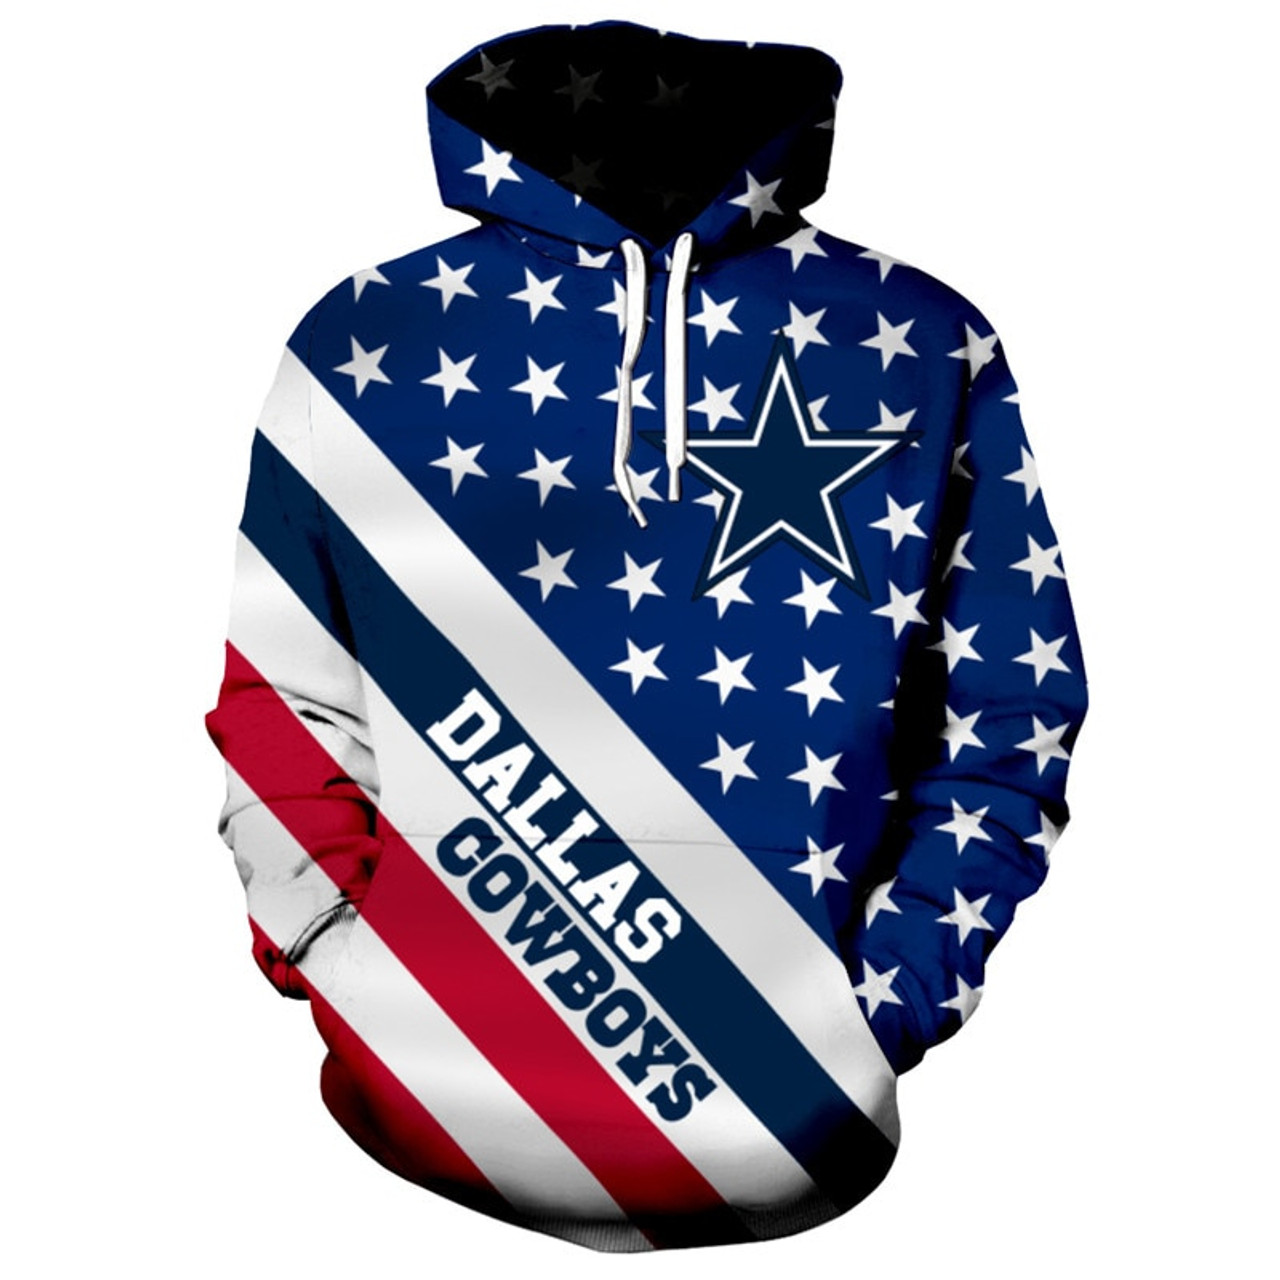 huge discount 4ed8b 2088e **(OFFICIALLY-LICENSED-N.F.L.DALLAS-COWBOYS/3D-GRAPHIC-PRINTED-PATRIOTIC-STARS  & STRIPES-PULLOVER-HOODIES/NICE-DETAILED-PREMIUM-CUSTOM-3D-GRAPHIC-PRIN...